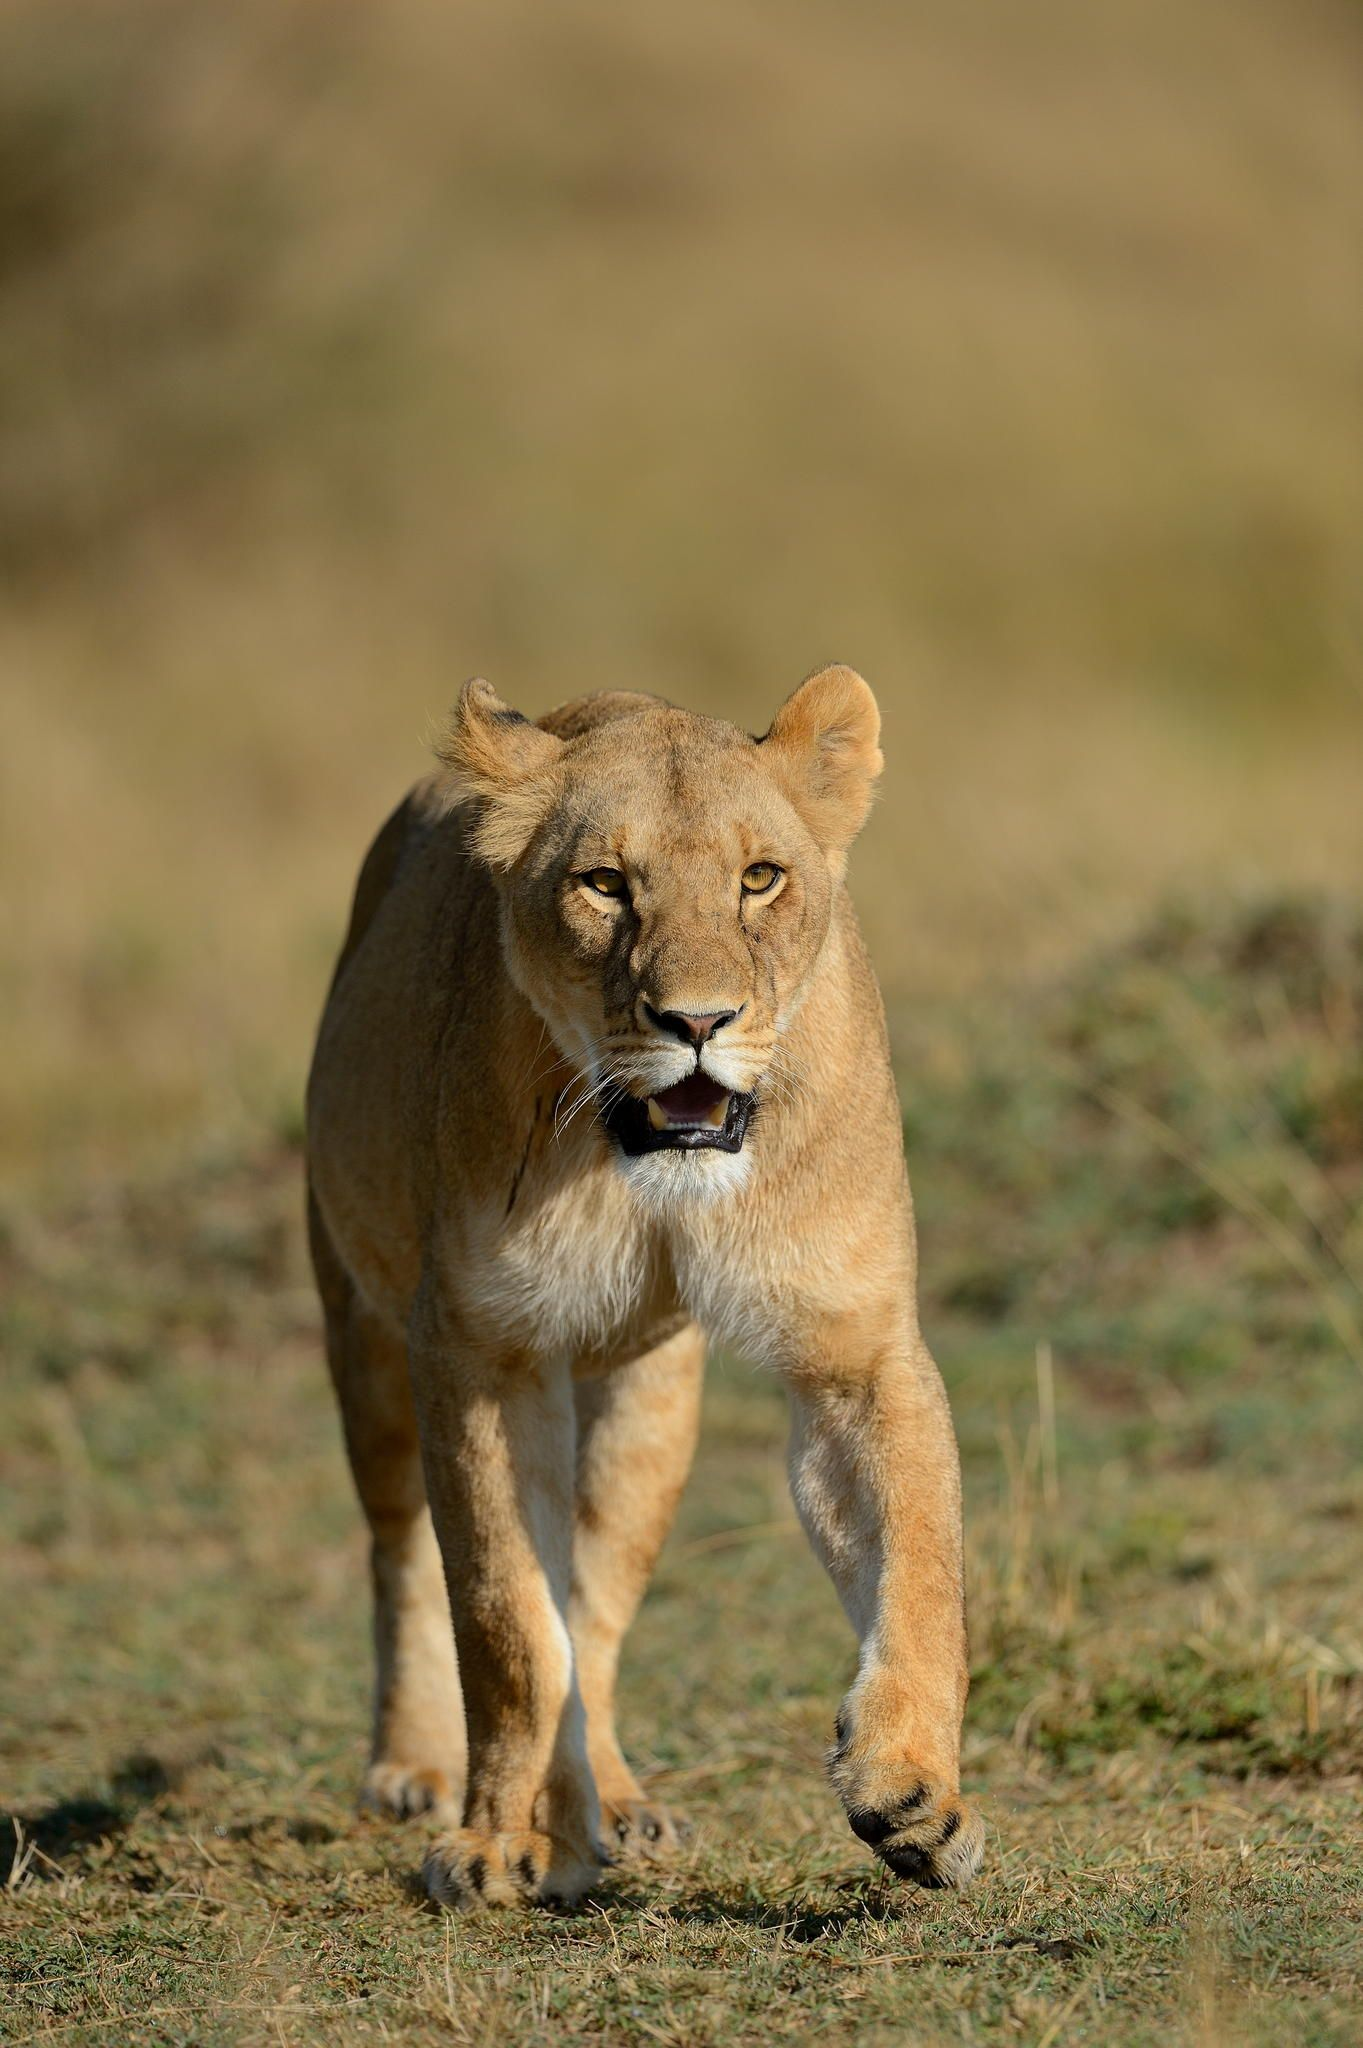 Lioness by Elmar Weiss on 500px